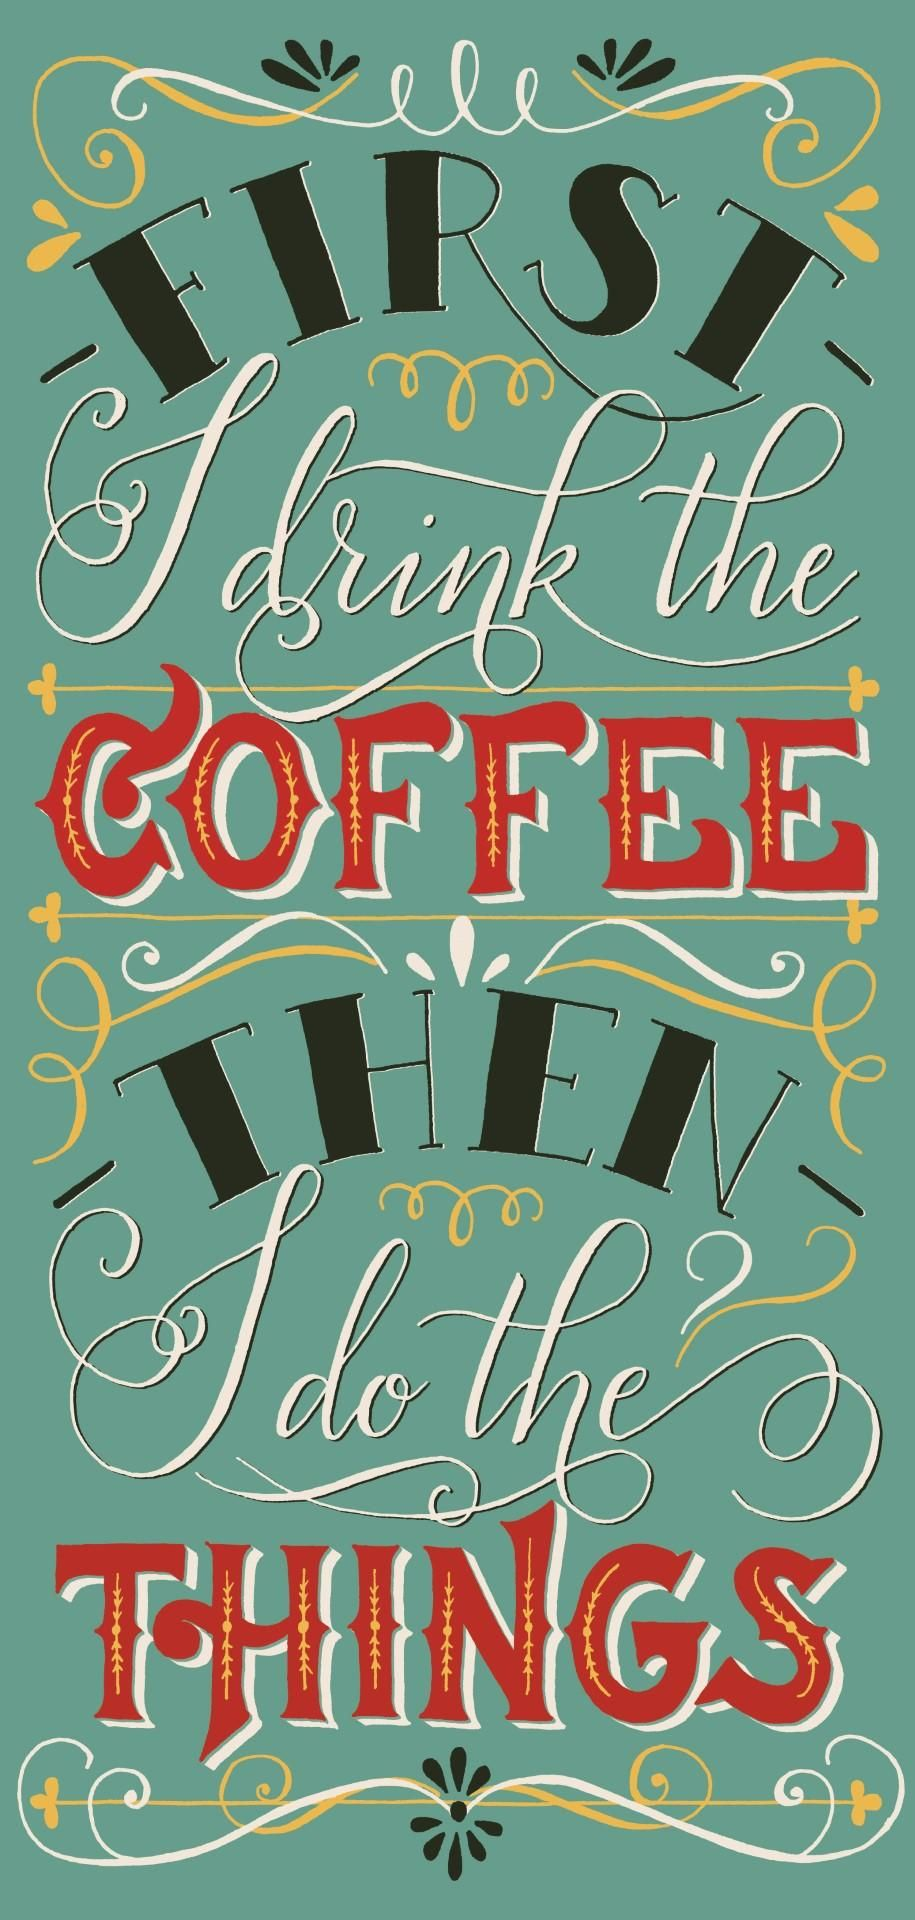 Vintage coffee quote - image 3 - student project